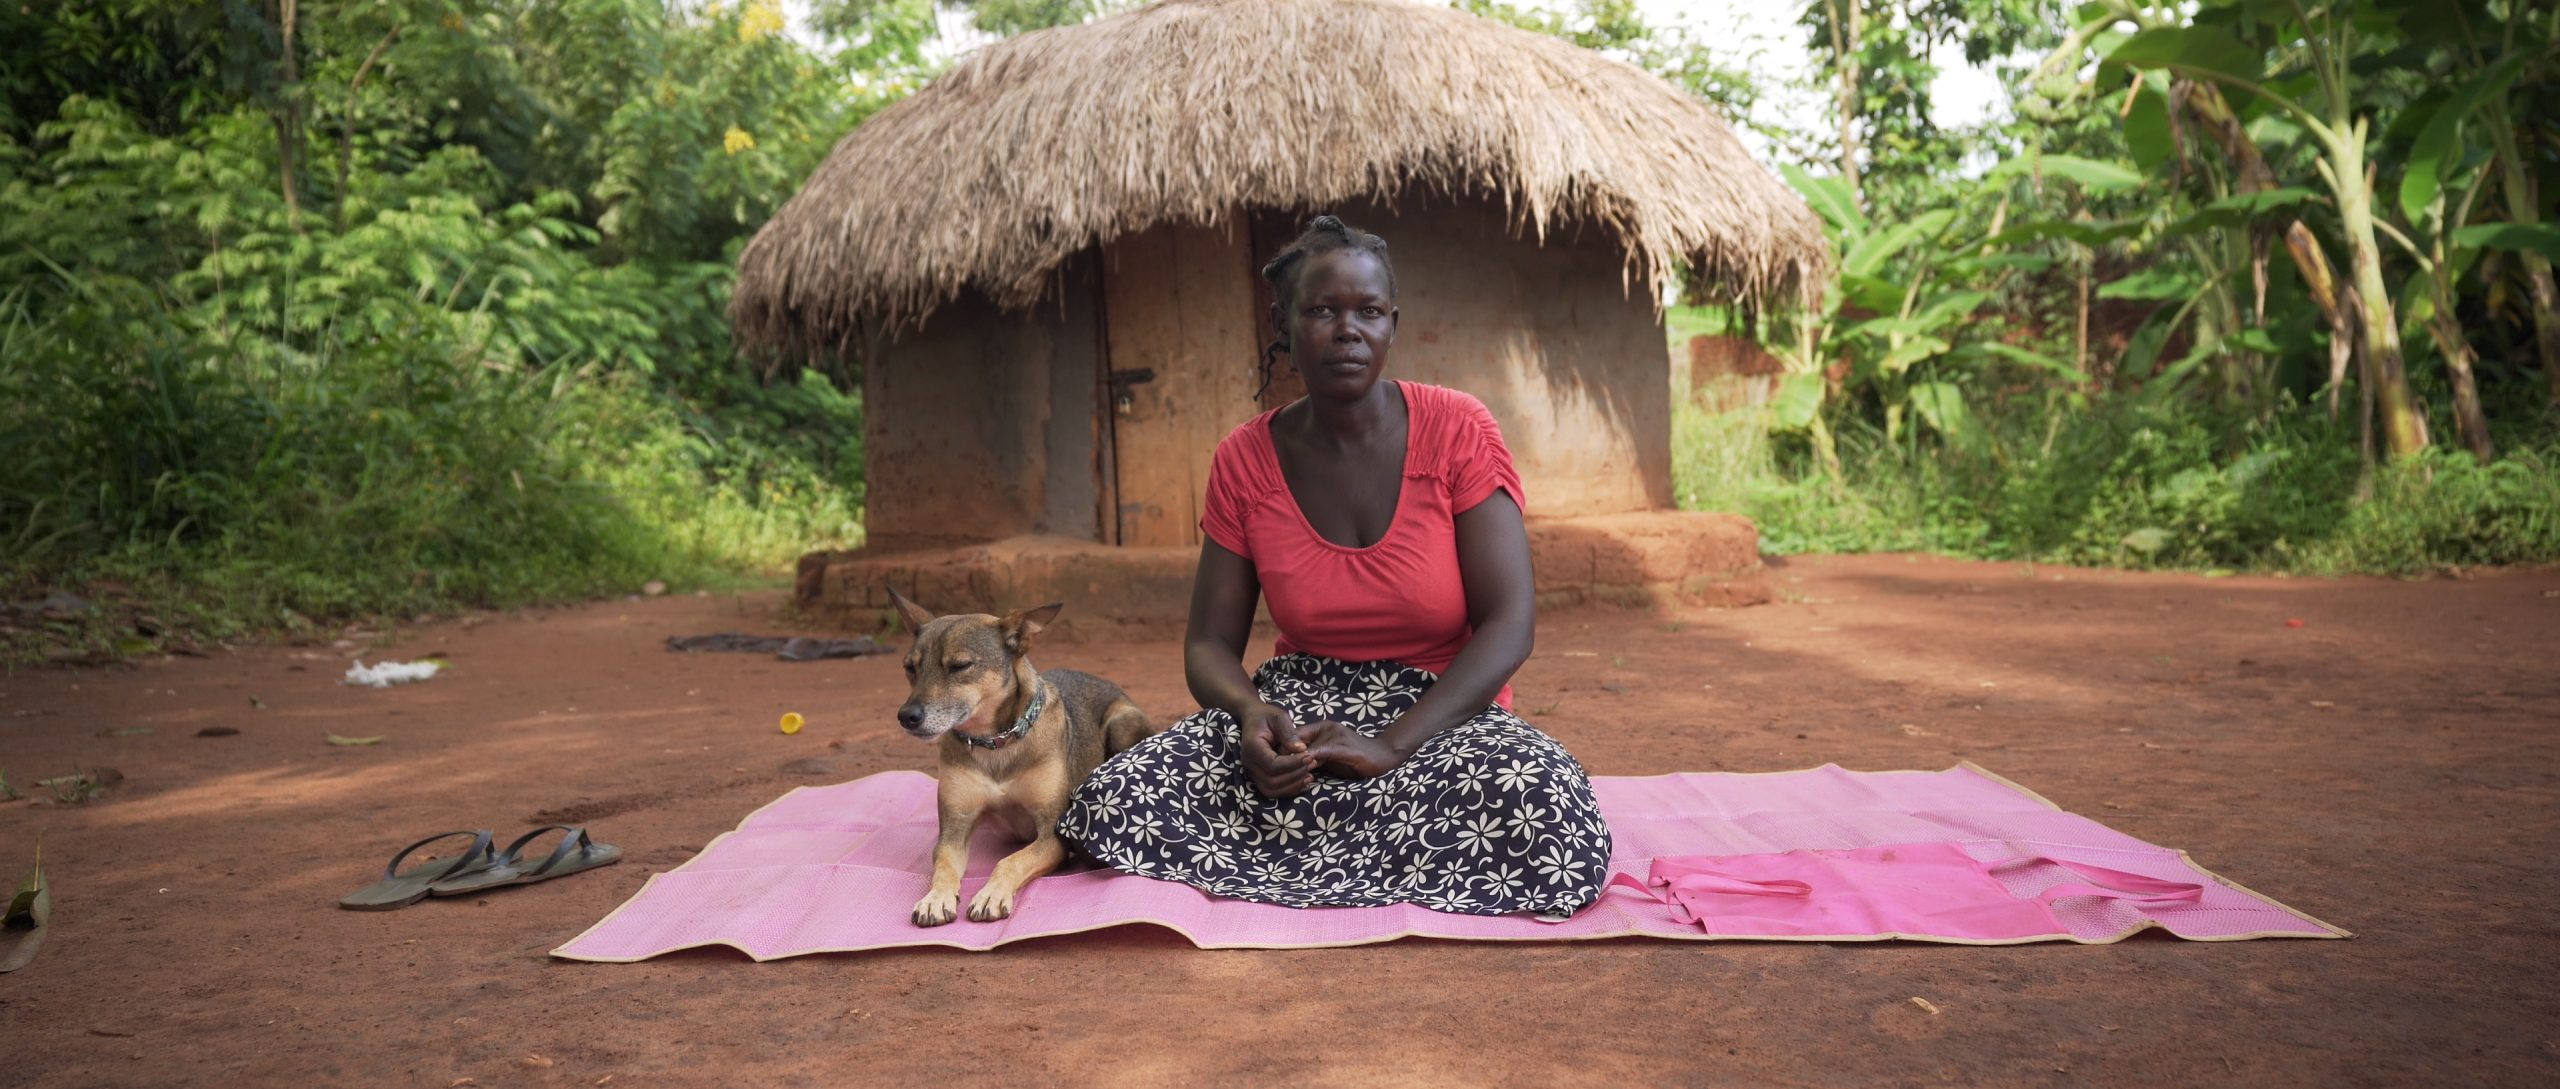 Lucy, a former Ugandan child soldier, with her dog Sadik (courtesy Urtext Films)